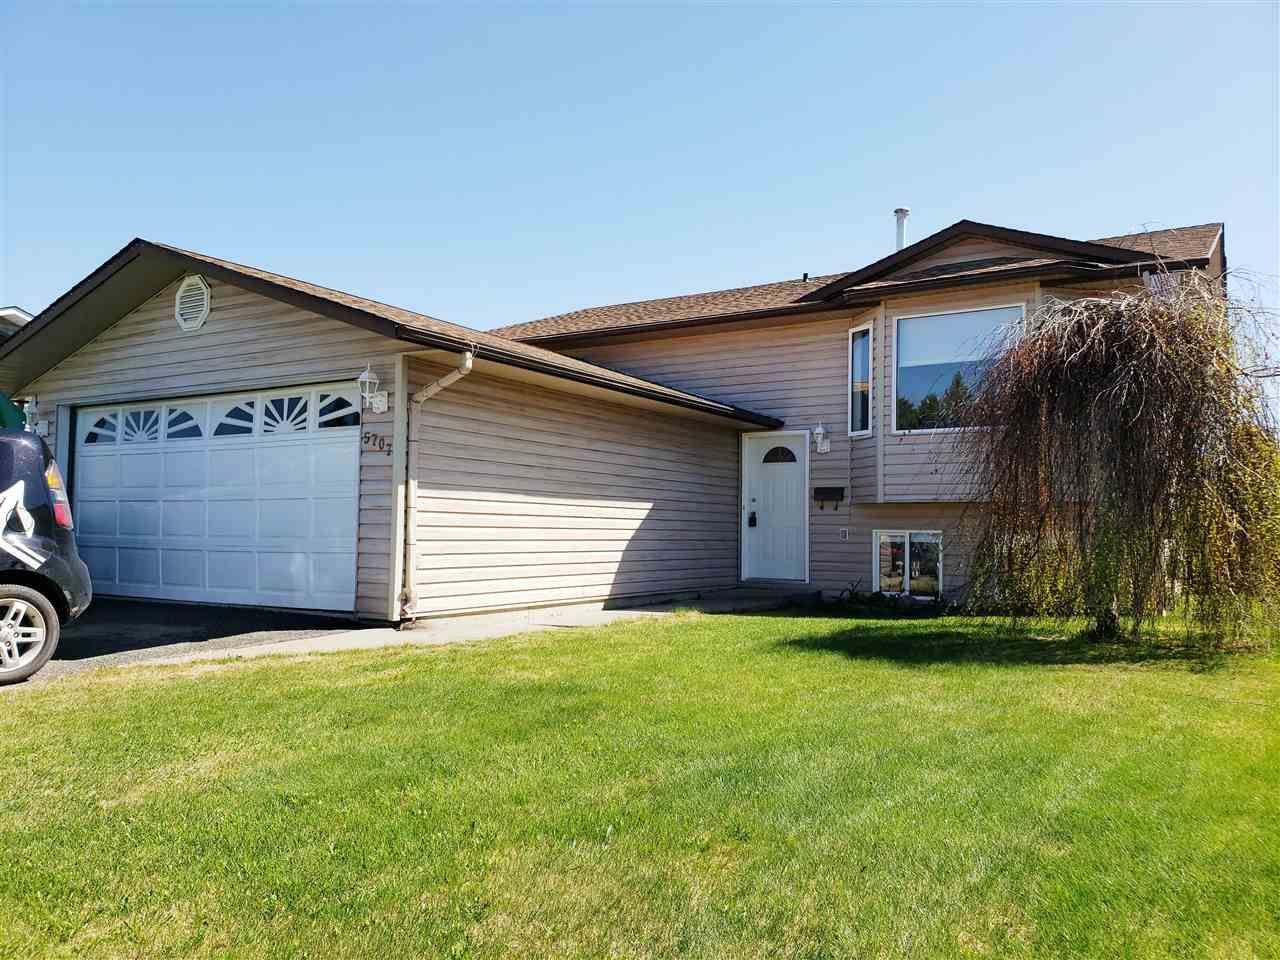 Main Photo: 5707 KOVACHICH Drive in Prince George: North Blackburn House for sale (PG City South East (Zone 75))  : MLS®# R2456268